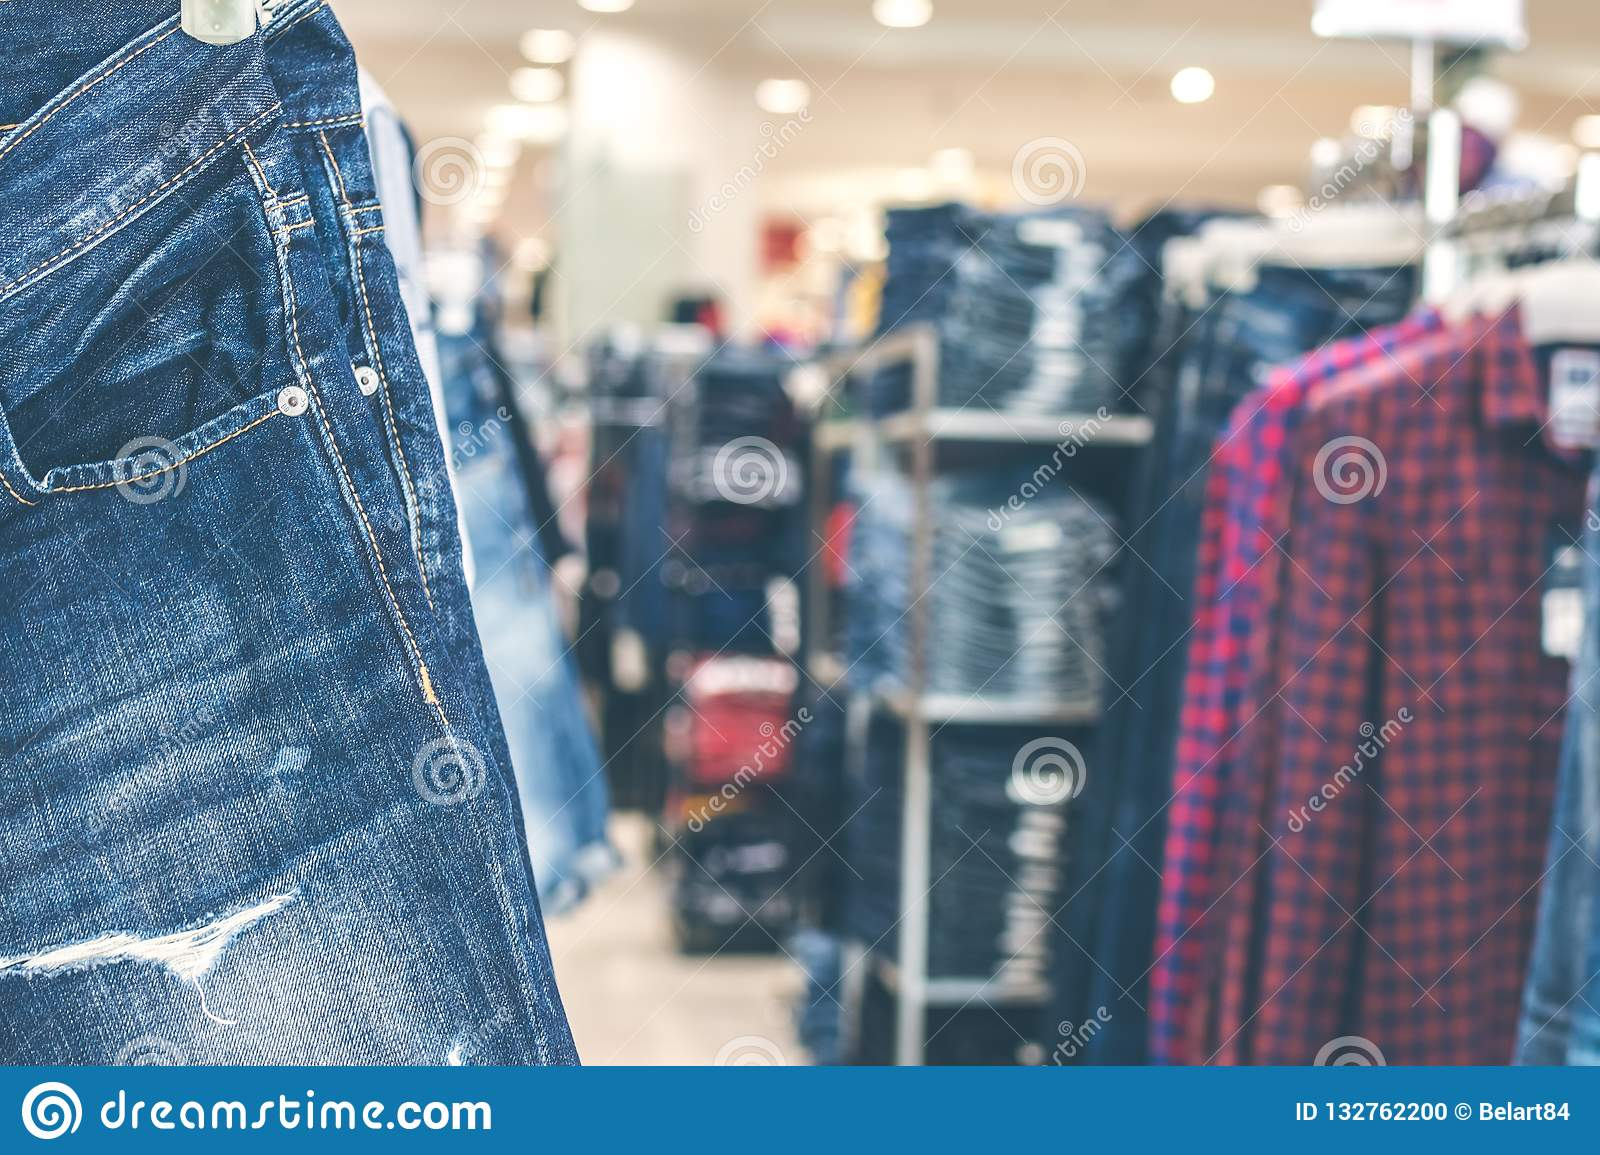 254aac31a Jeans Clothes Hanging In The Store. Stock Photo - Image of hanging ...